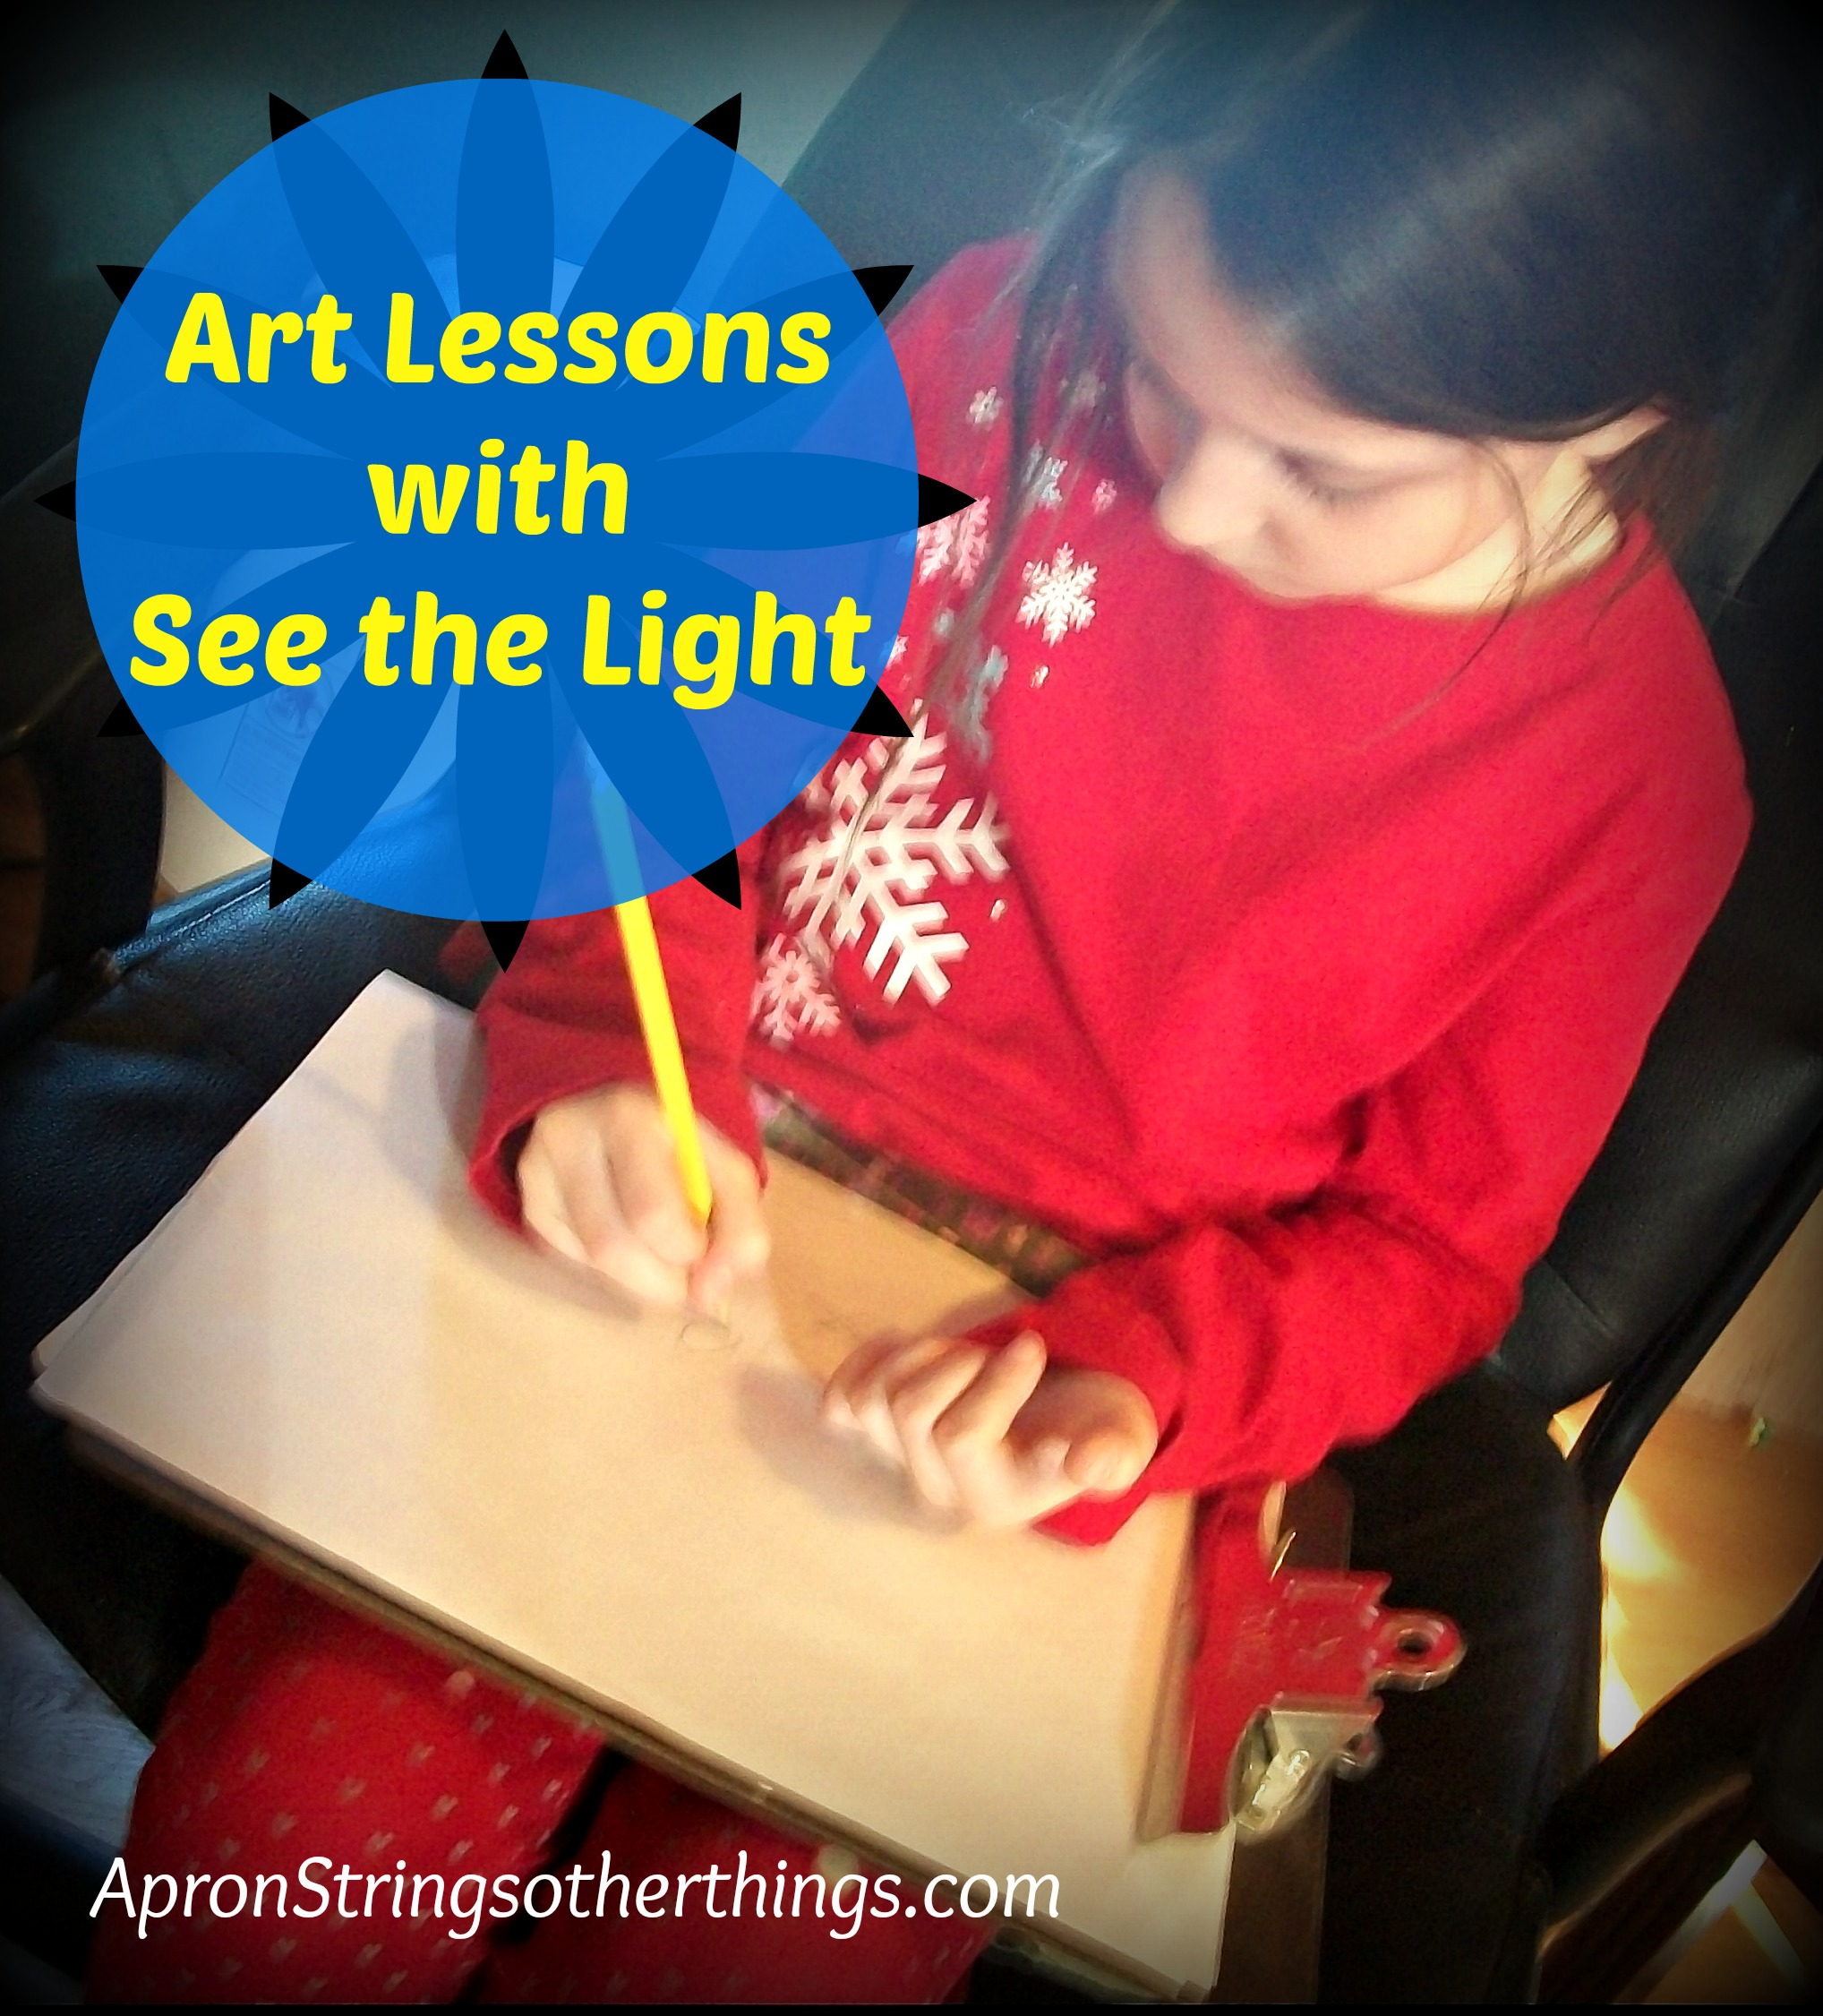 Art Lessons | Apron Strings & other things